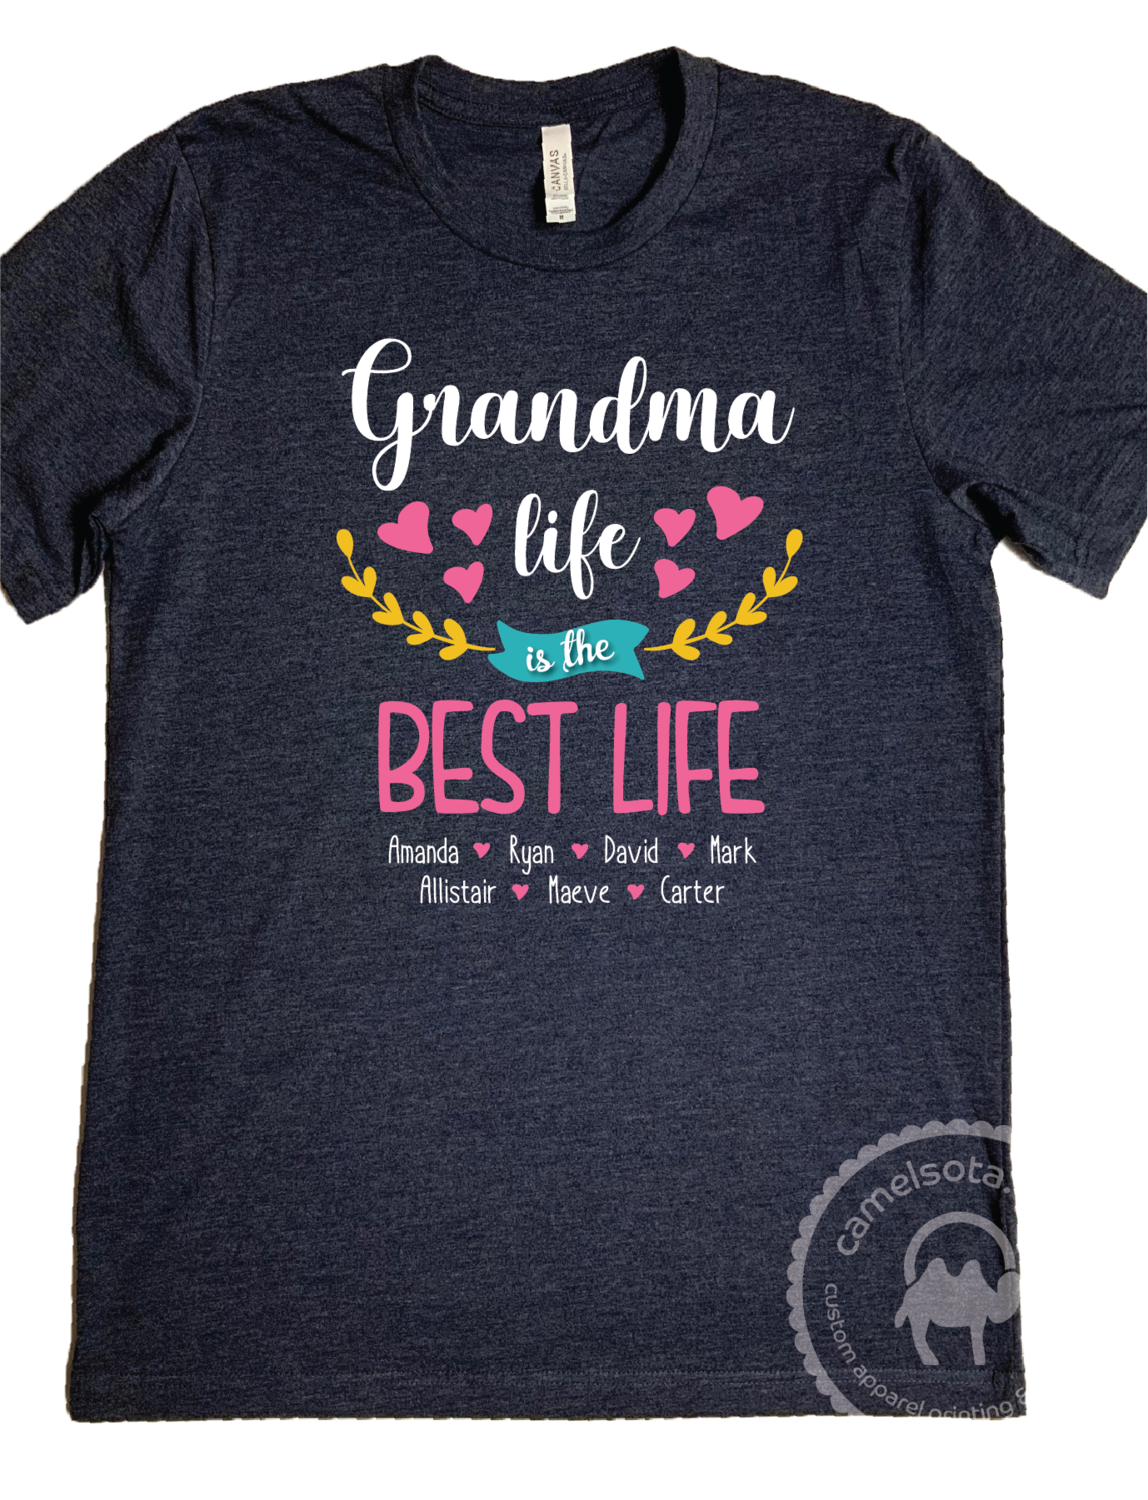 Grandma Life is the Best Life shirt with Grandkids names